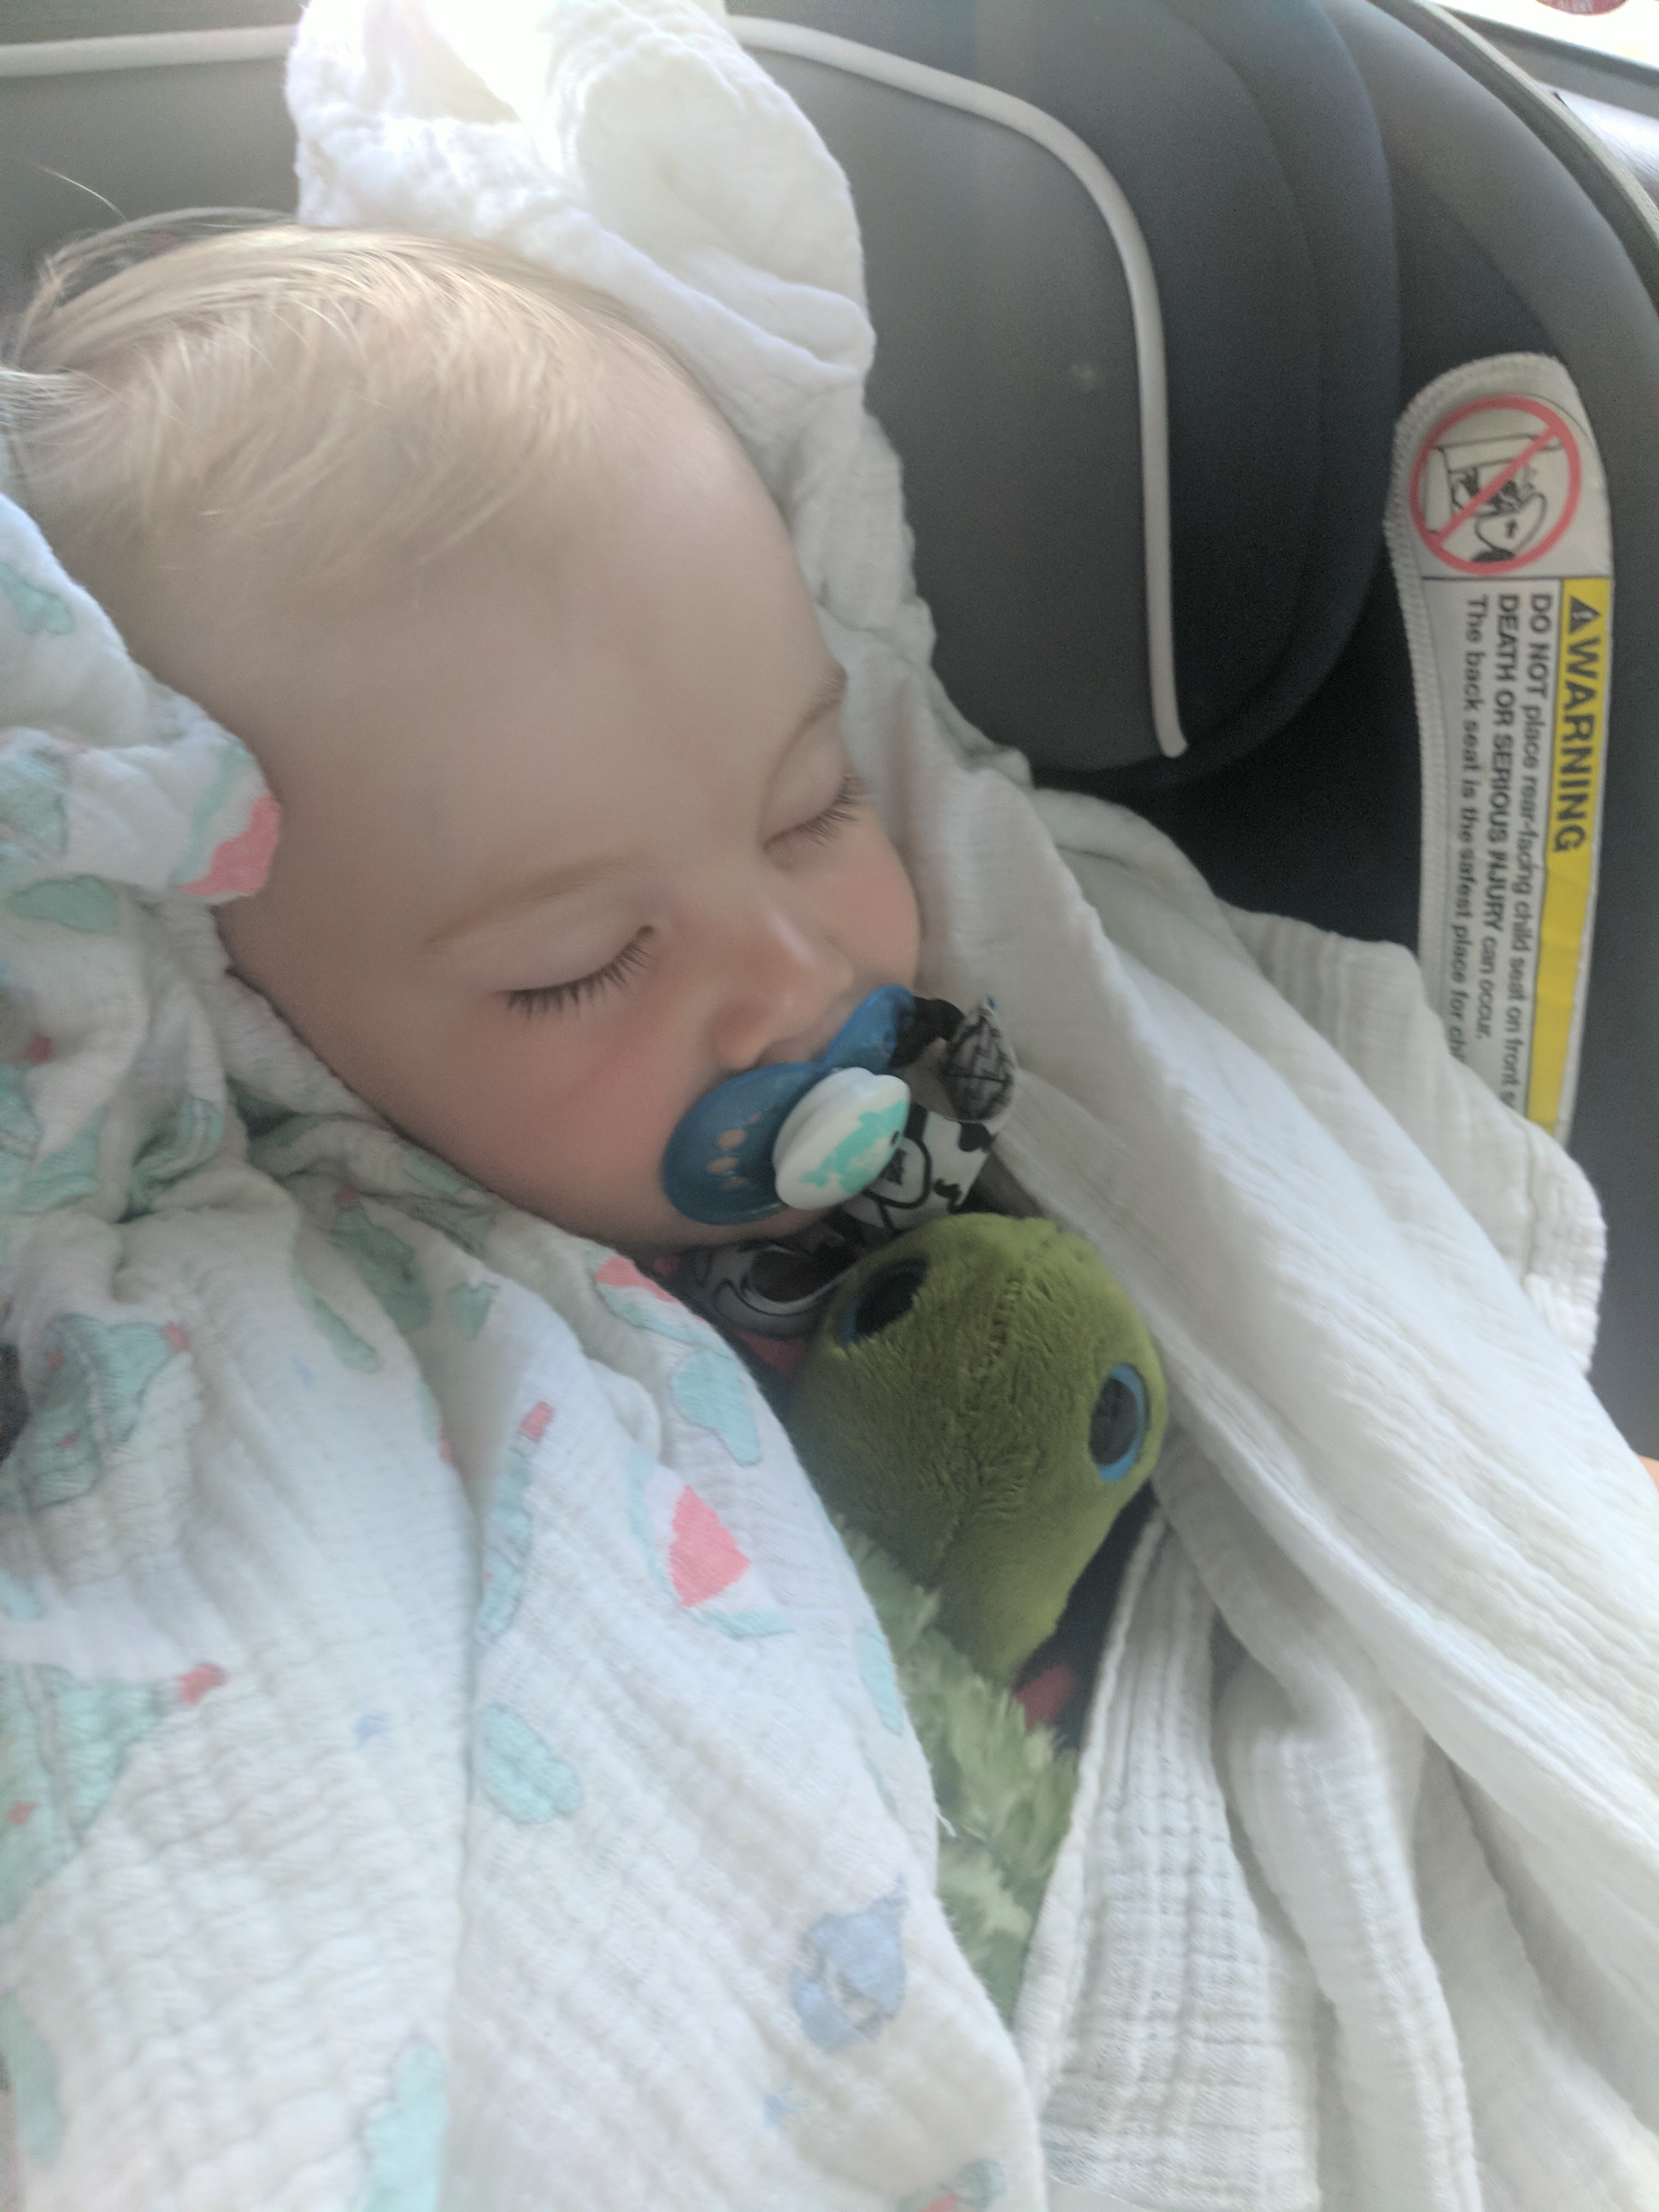 Logan sleeping on the trip, how to happily survive a roadtrip with your toddler